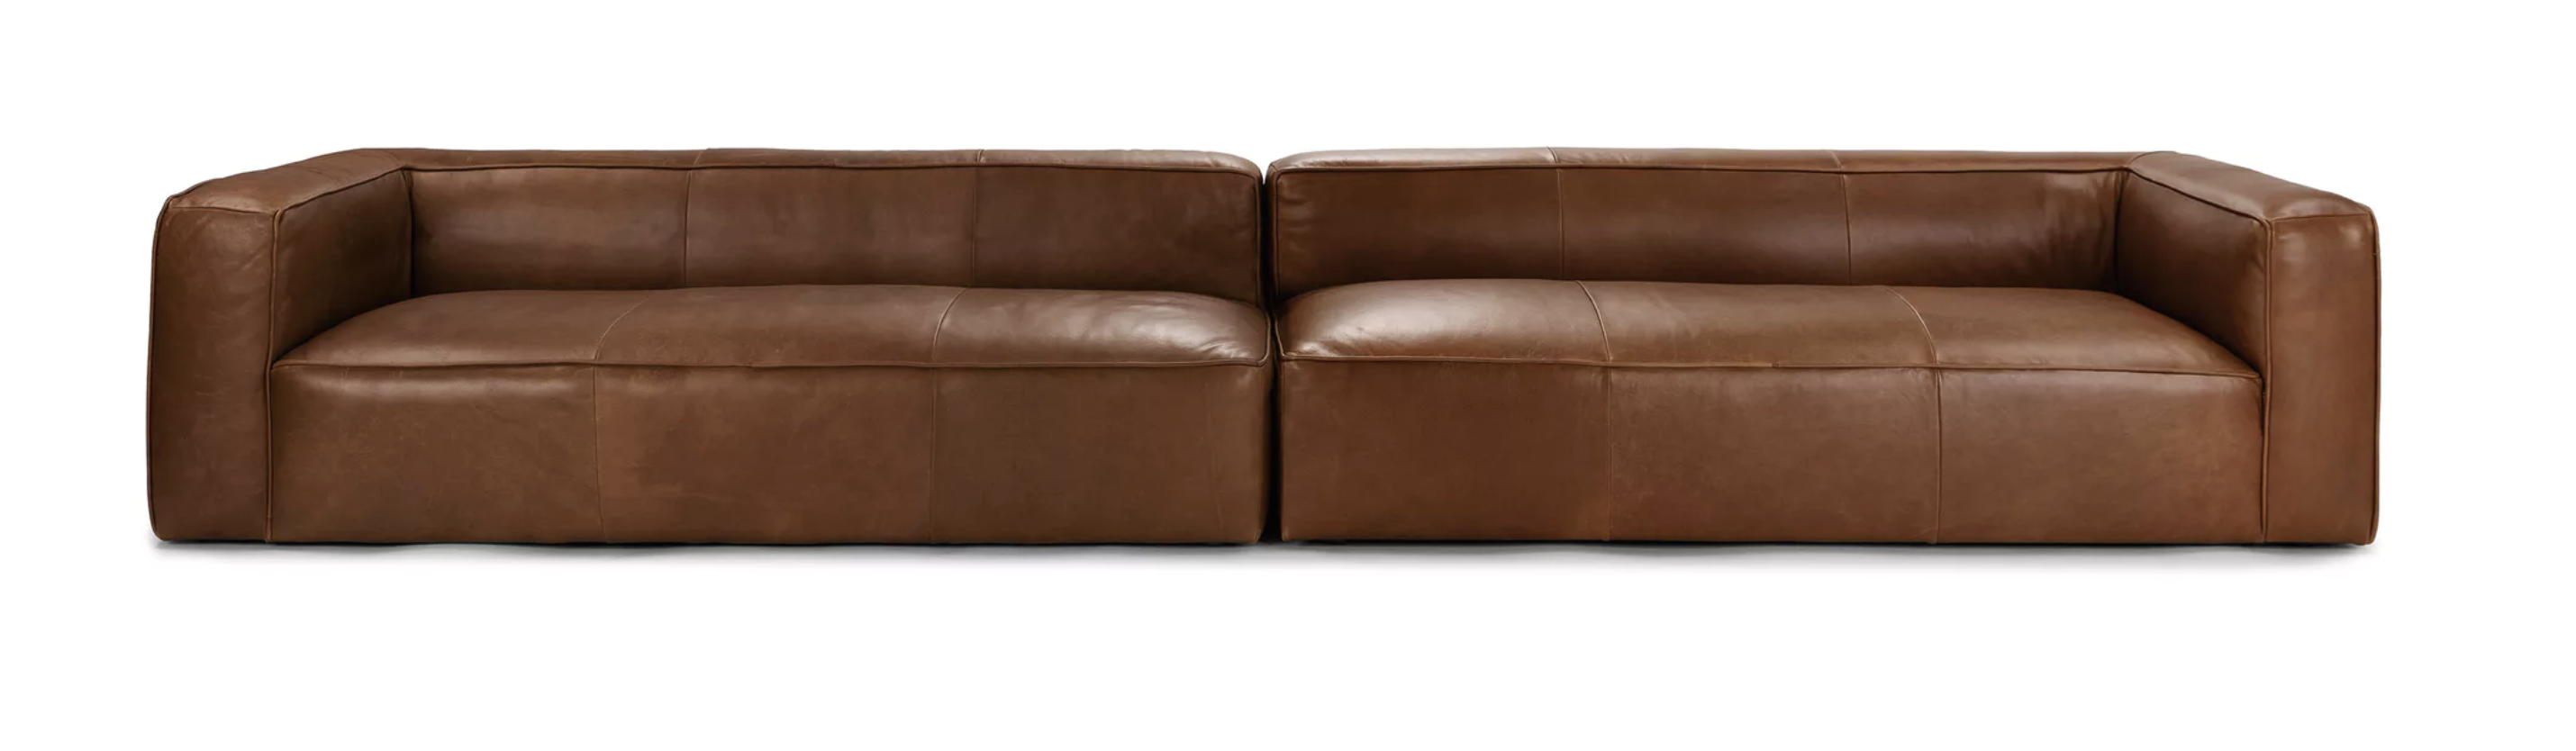 Best Mello Taos Brown 160 Sofa Long Couch Mid Century 640 x 480